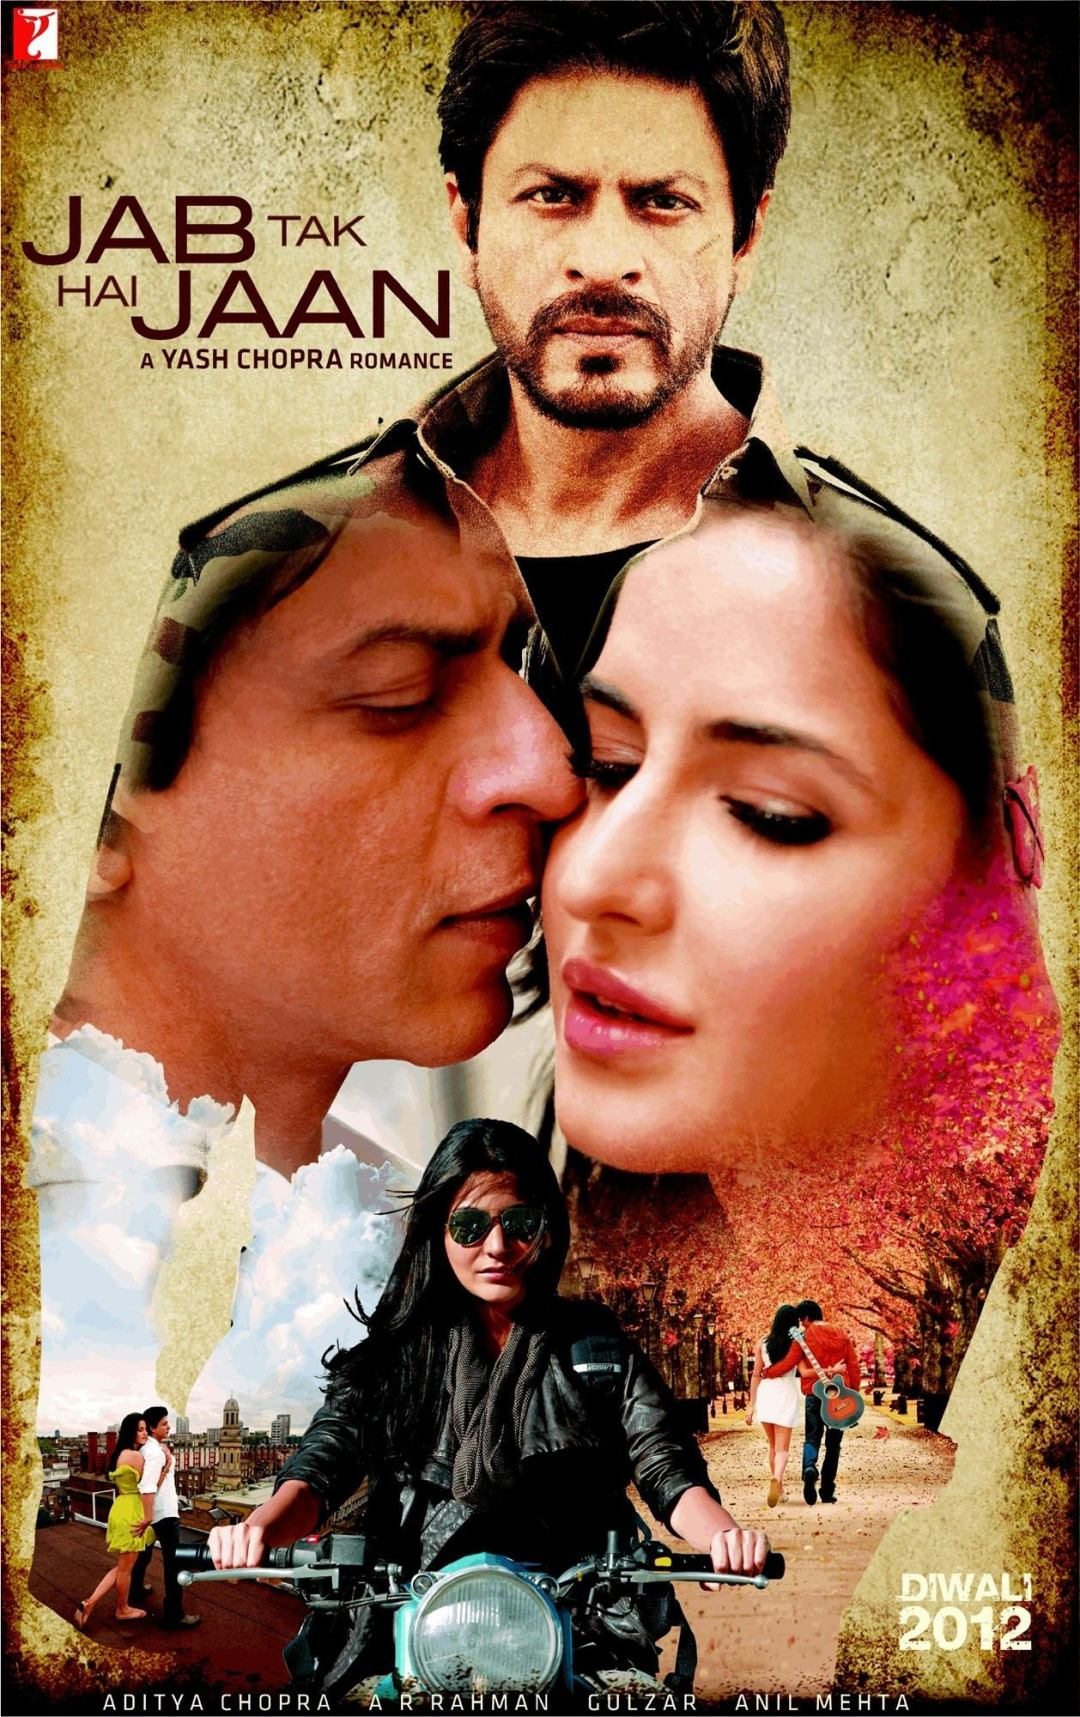 Jab Tak Hai Jaan poster is copied from Total Recall